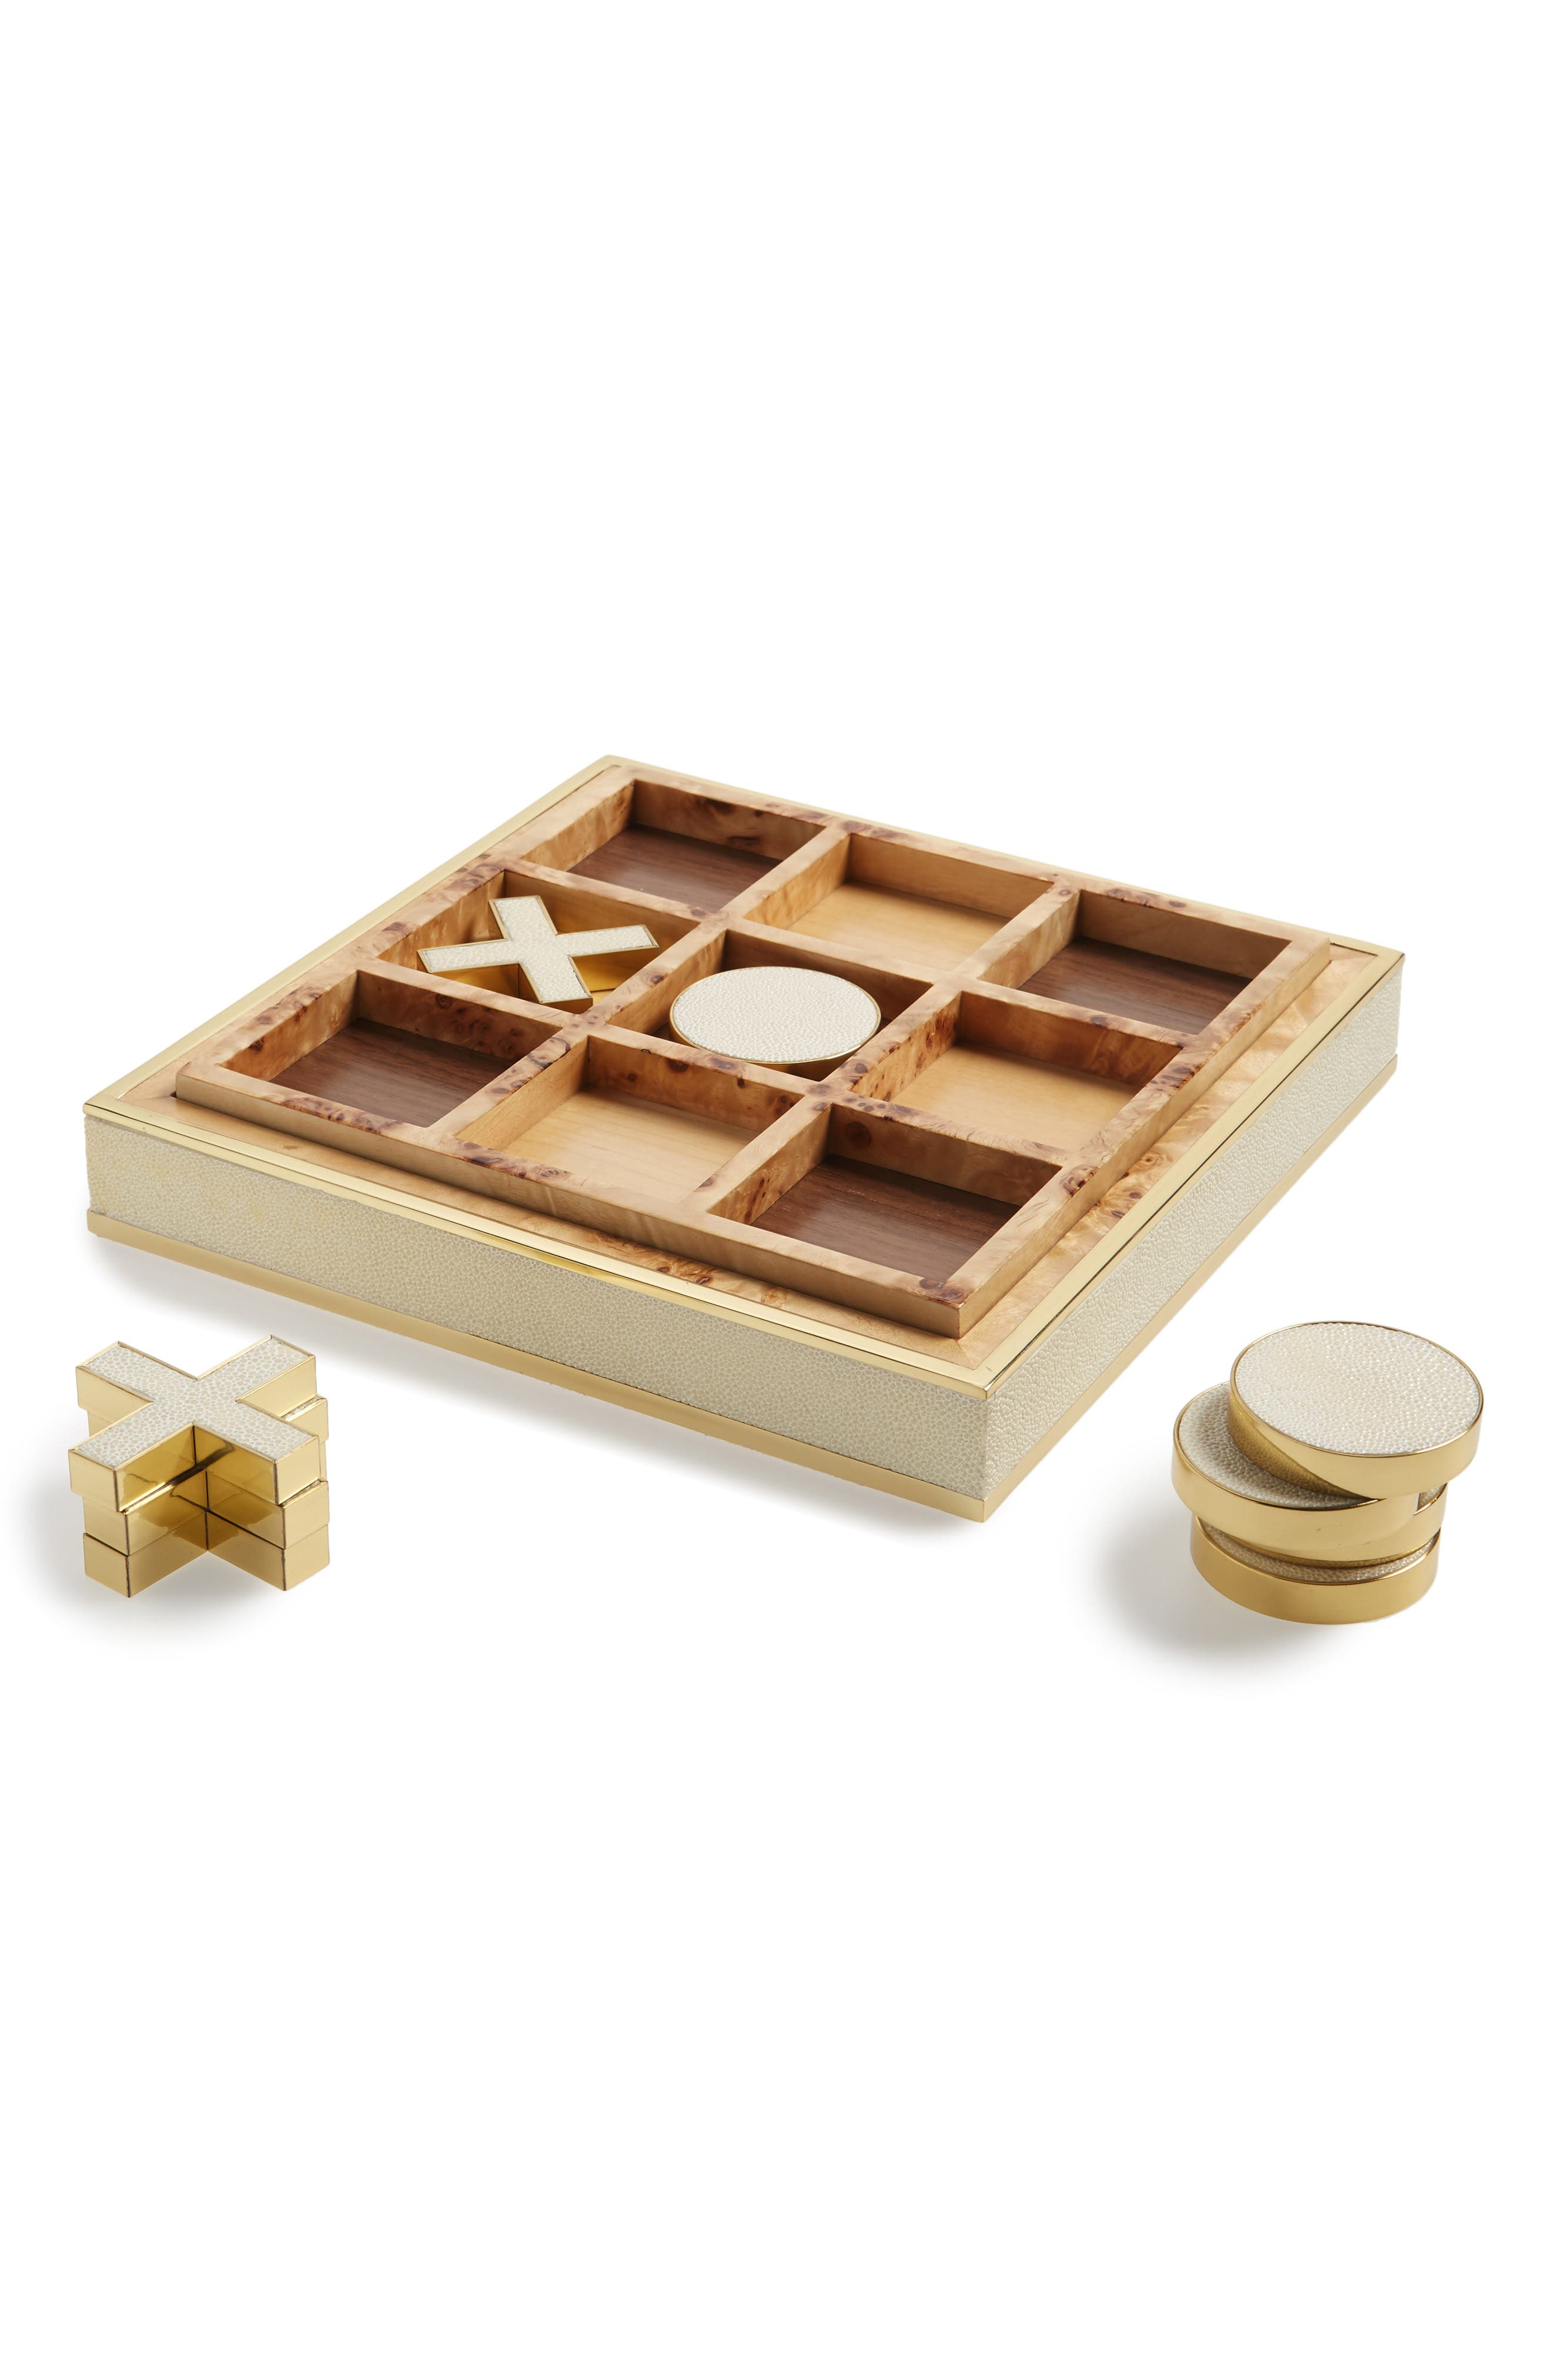 Shagreen Tic-Tac-Toe Game,                         Main,                         color, WHITE